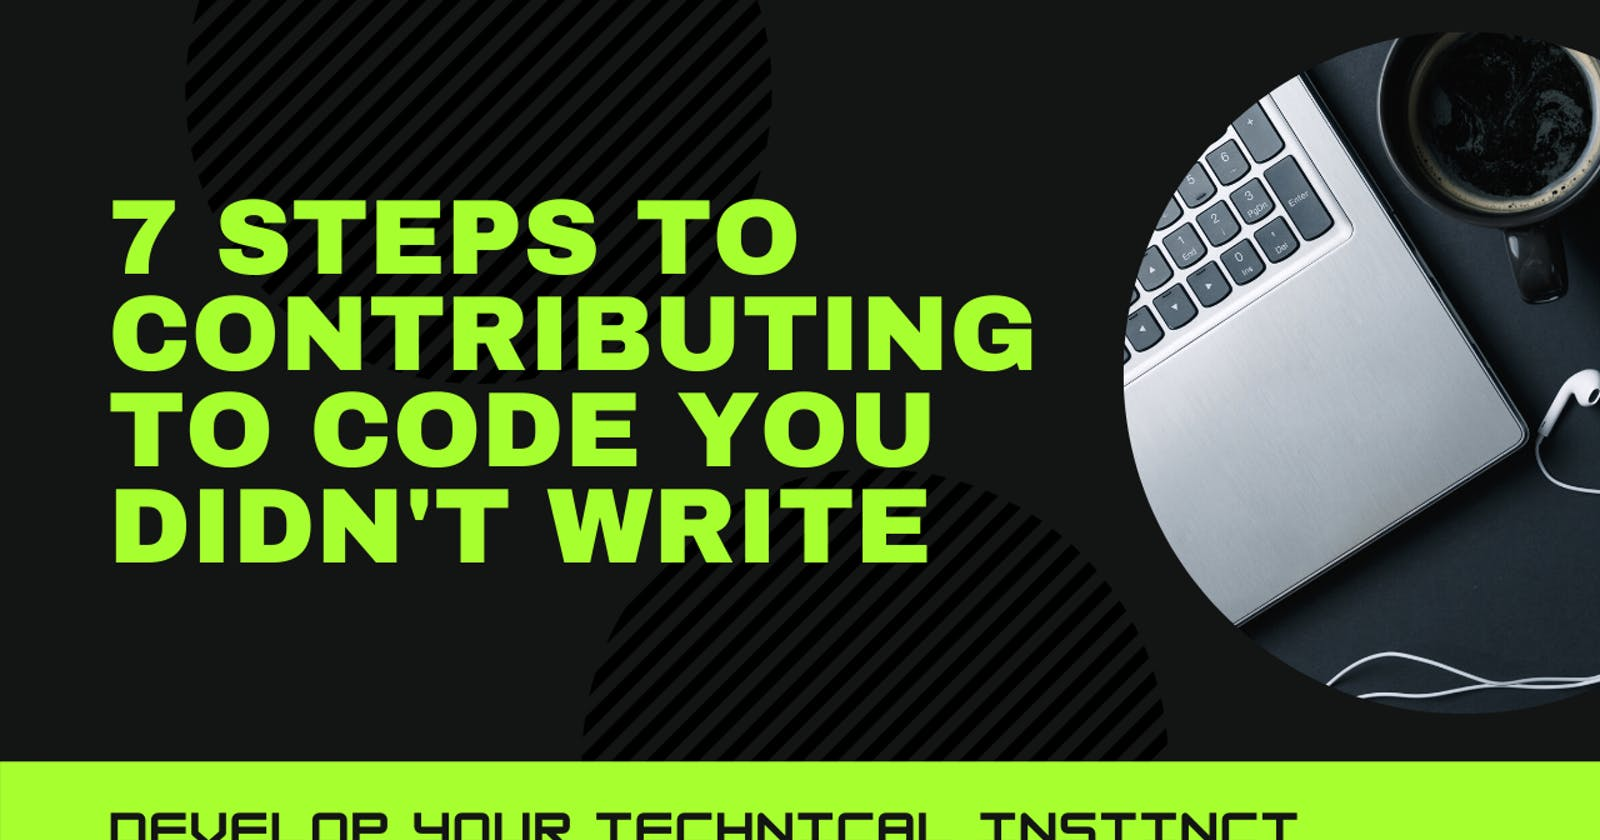 7 steps to contributing to code you didn't write